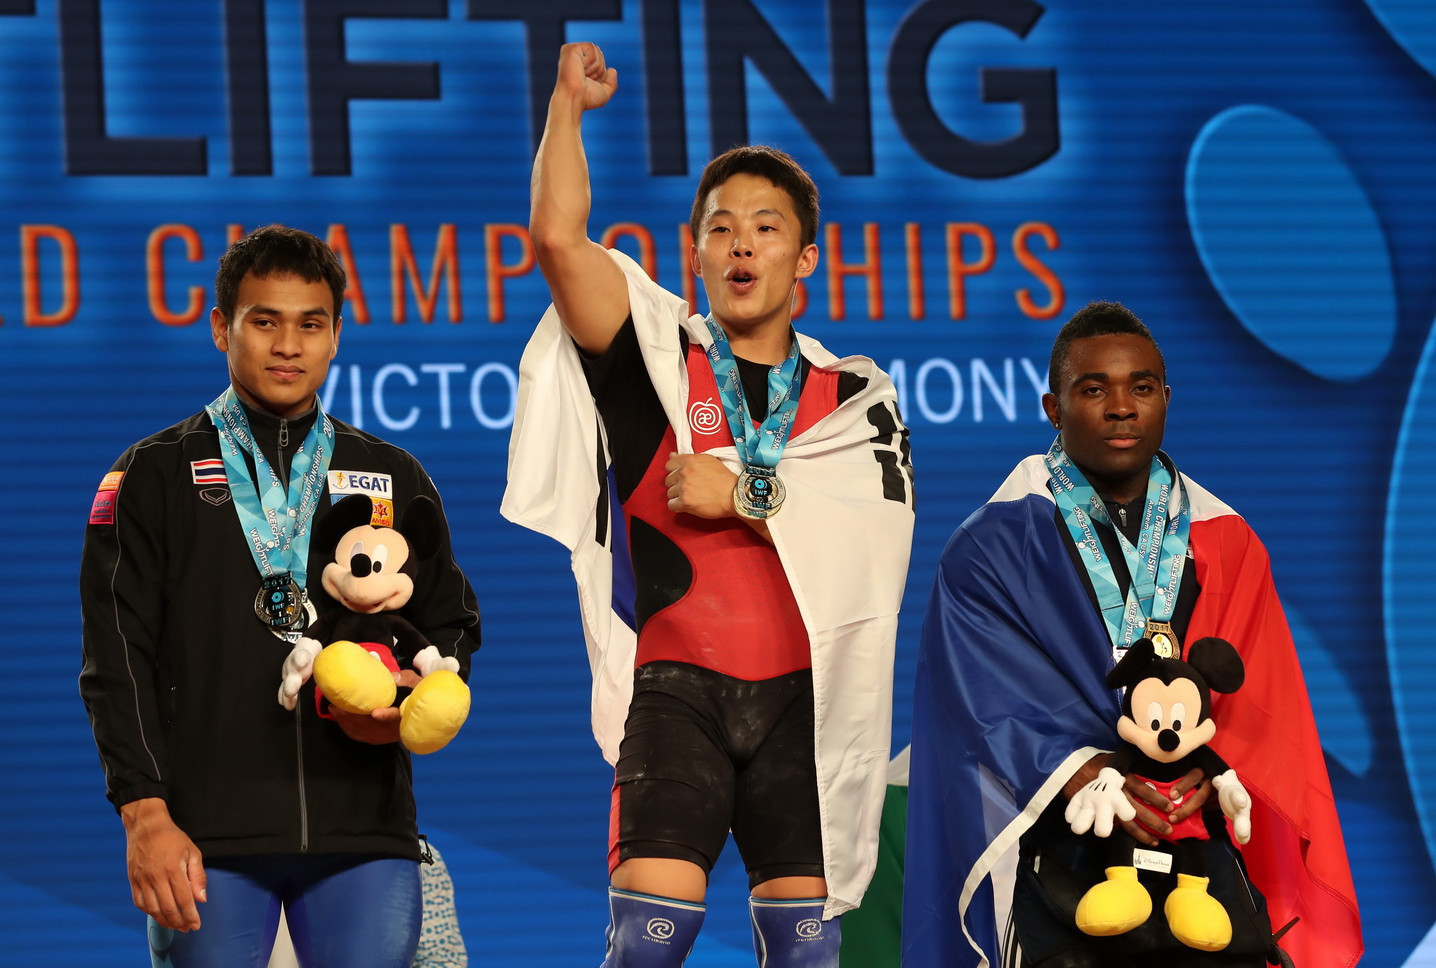 South Korea's Won claims men's 69kg title as home hope Cummings Jr bombs out at 2017 IWF World Championships